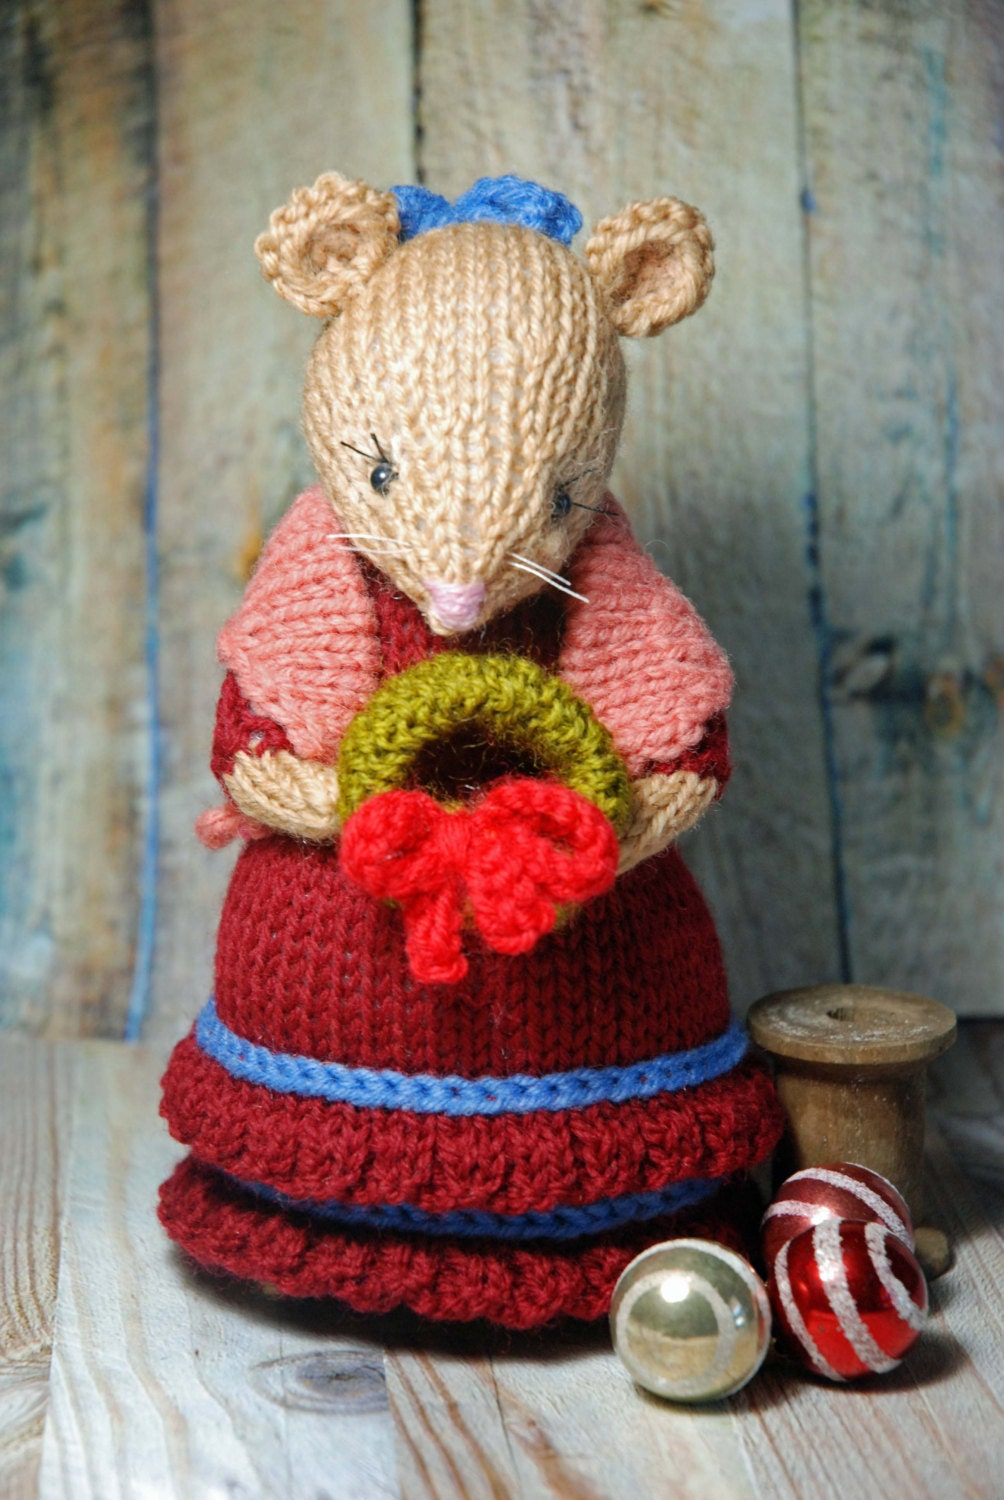 Knitting Patterns For Christmas Mice : Knitted Christmas Mouse Lady Holiday Mouse Decoration